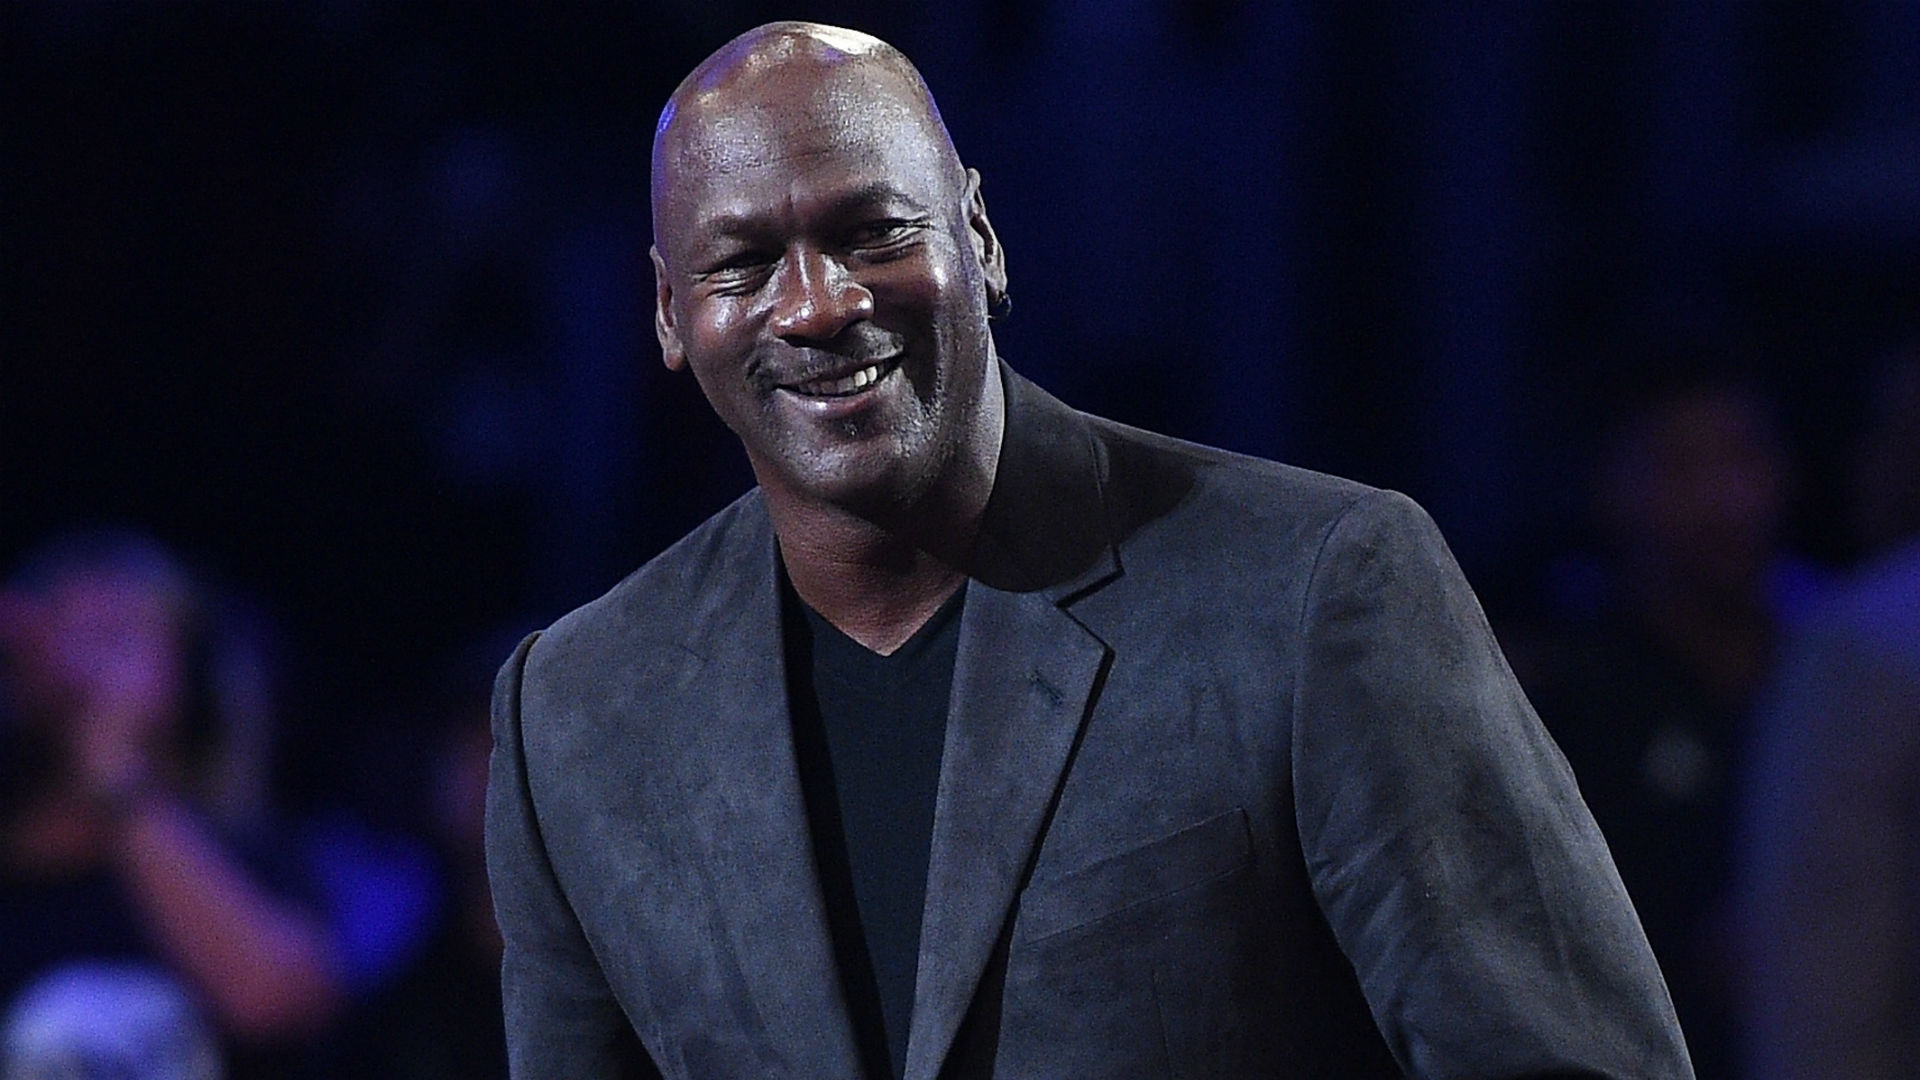 Michael Jordan only shelled out $30 million to buy Hornets franchise